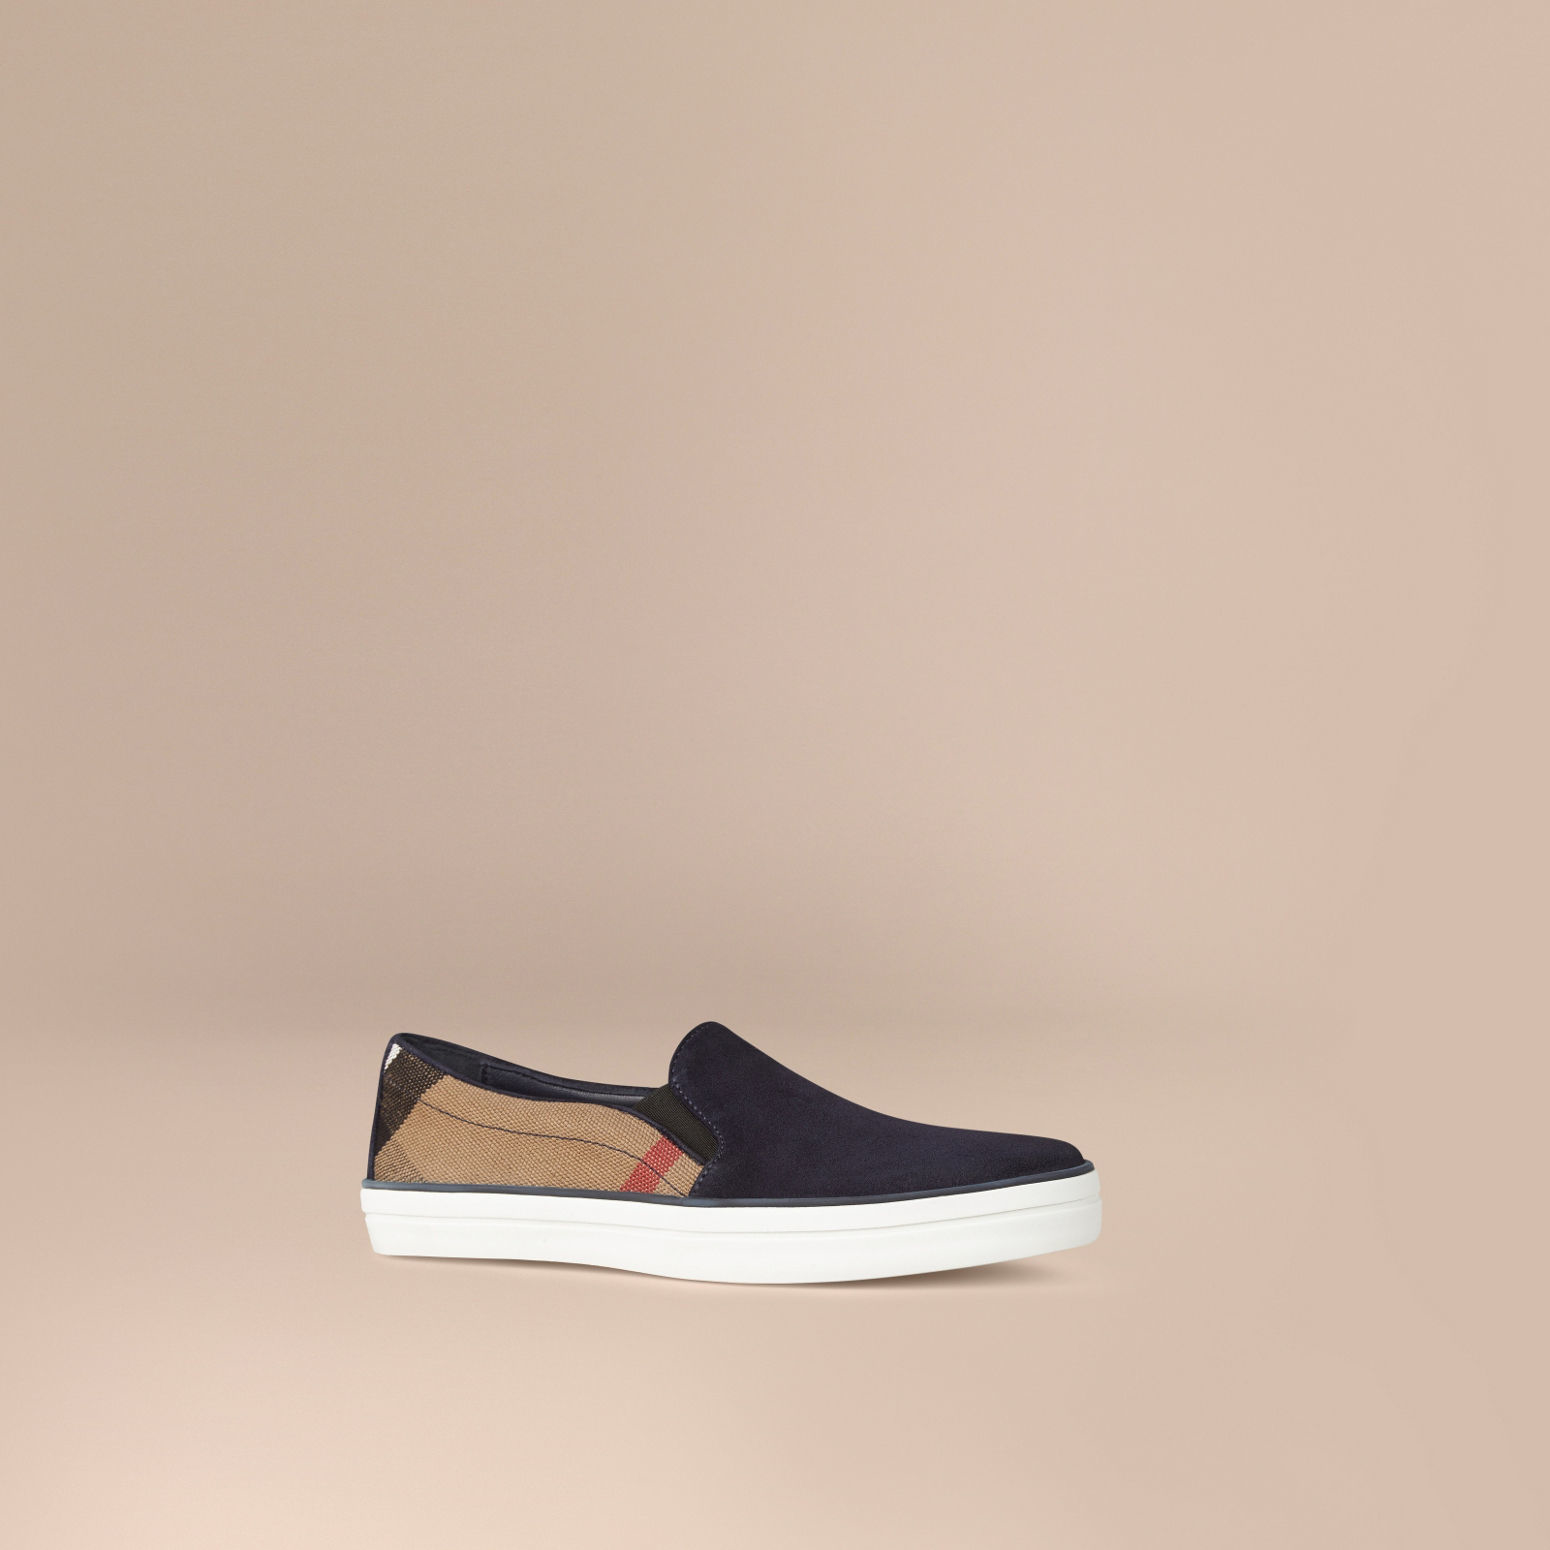 burberry canvas check and suede slip on trainers navy in